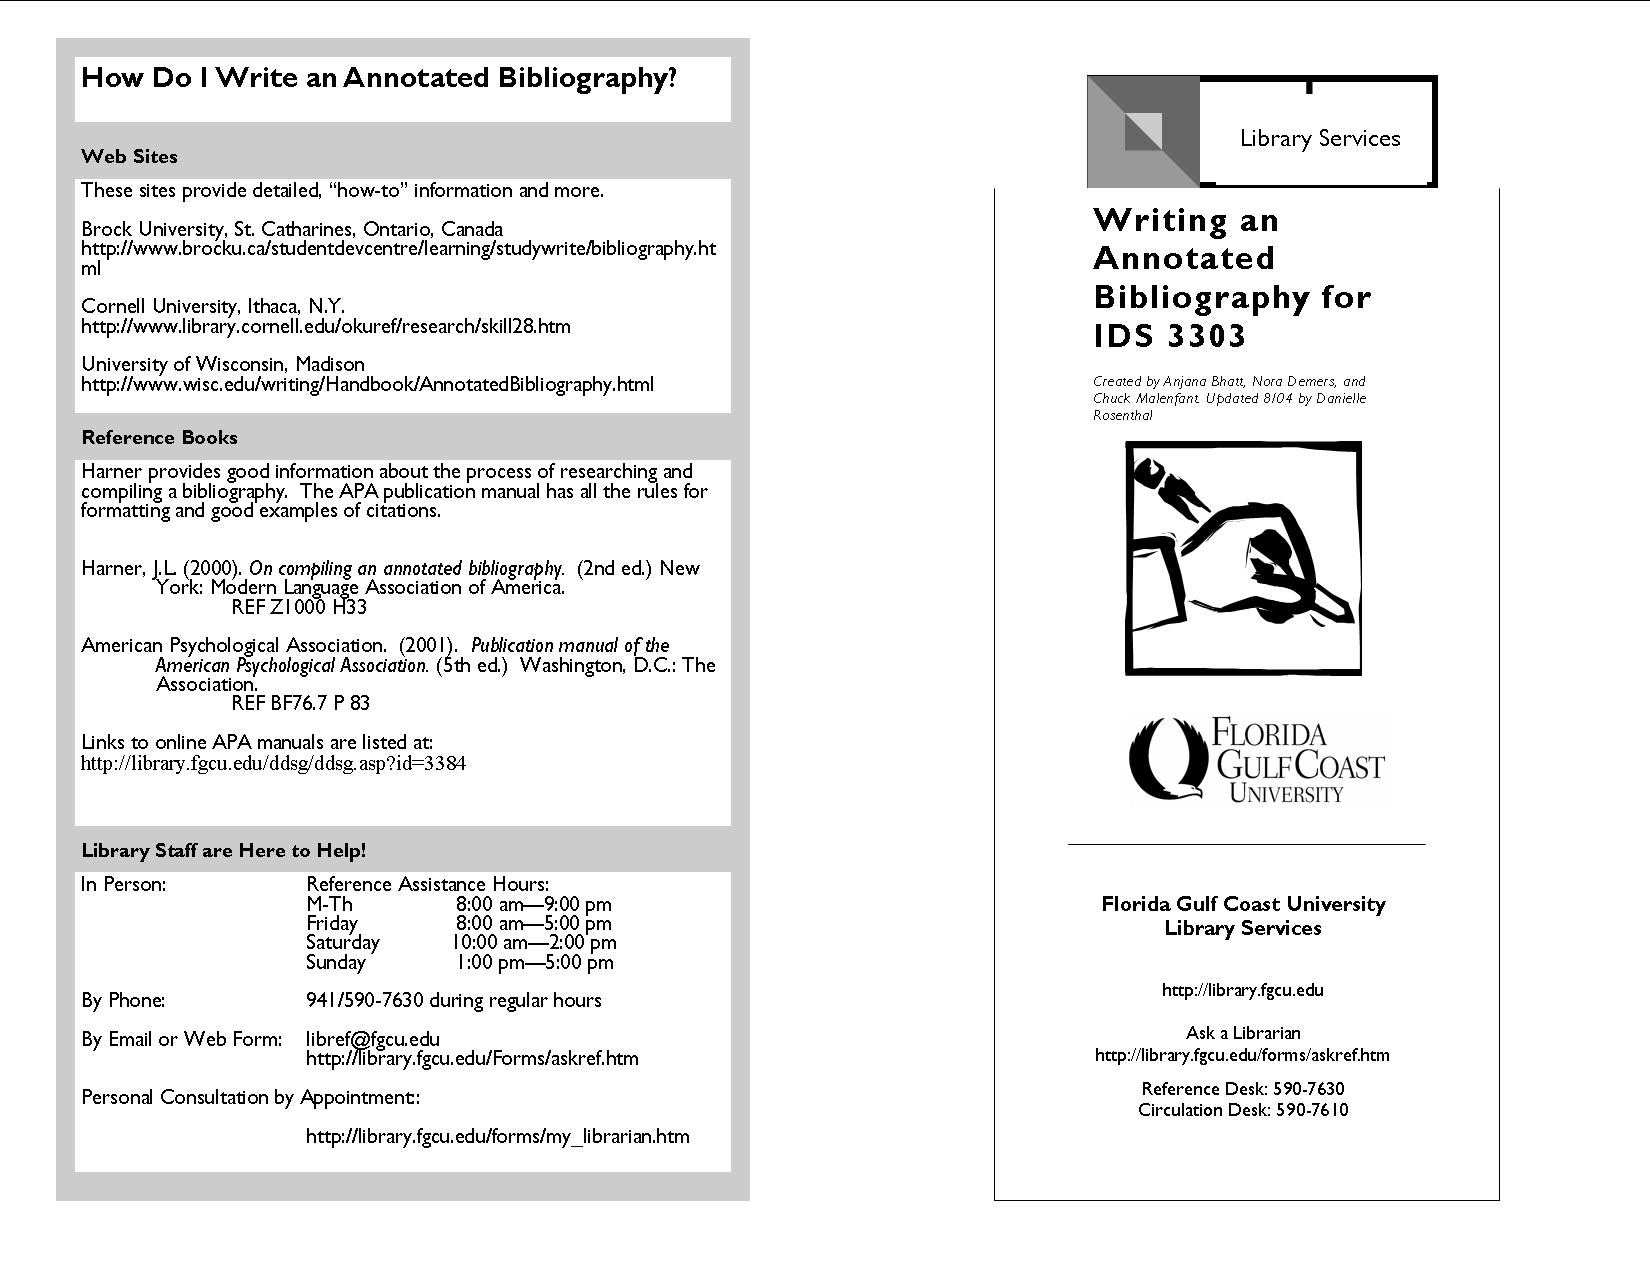 Apa style annotated bibliography website